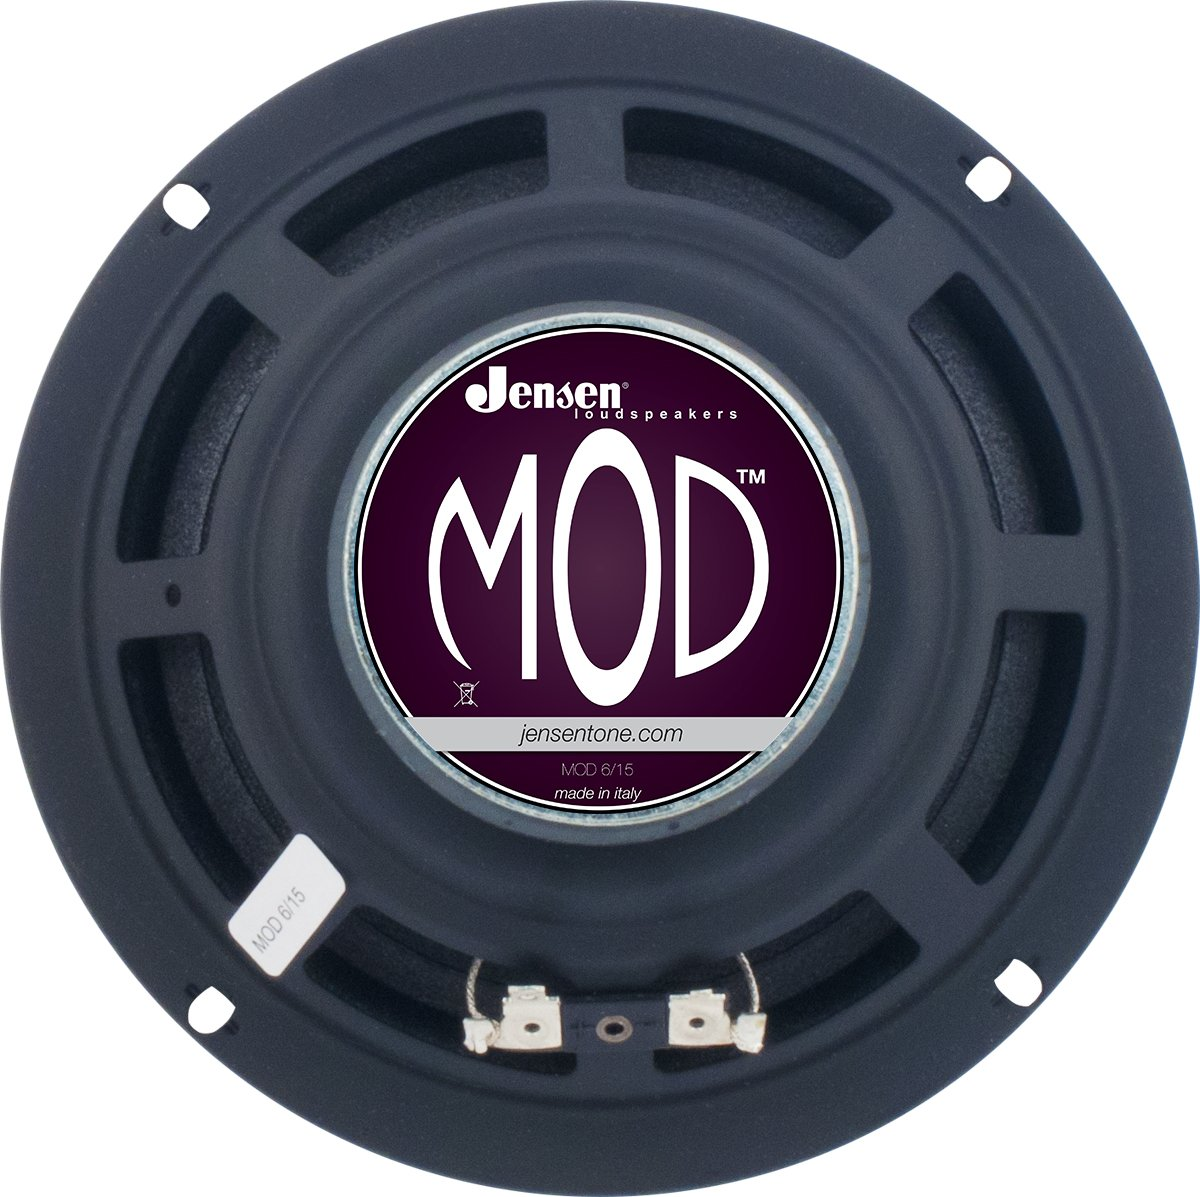 "Amazon.com: Jensen MOD6-15 6"" 15 Watt Guitar Speaker, 8 ohm: Musical  Instruments"